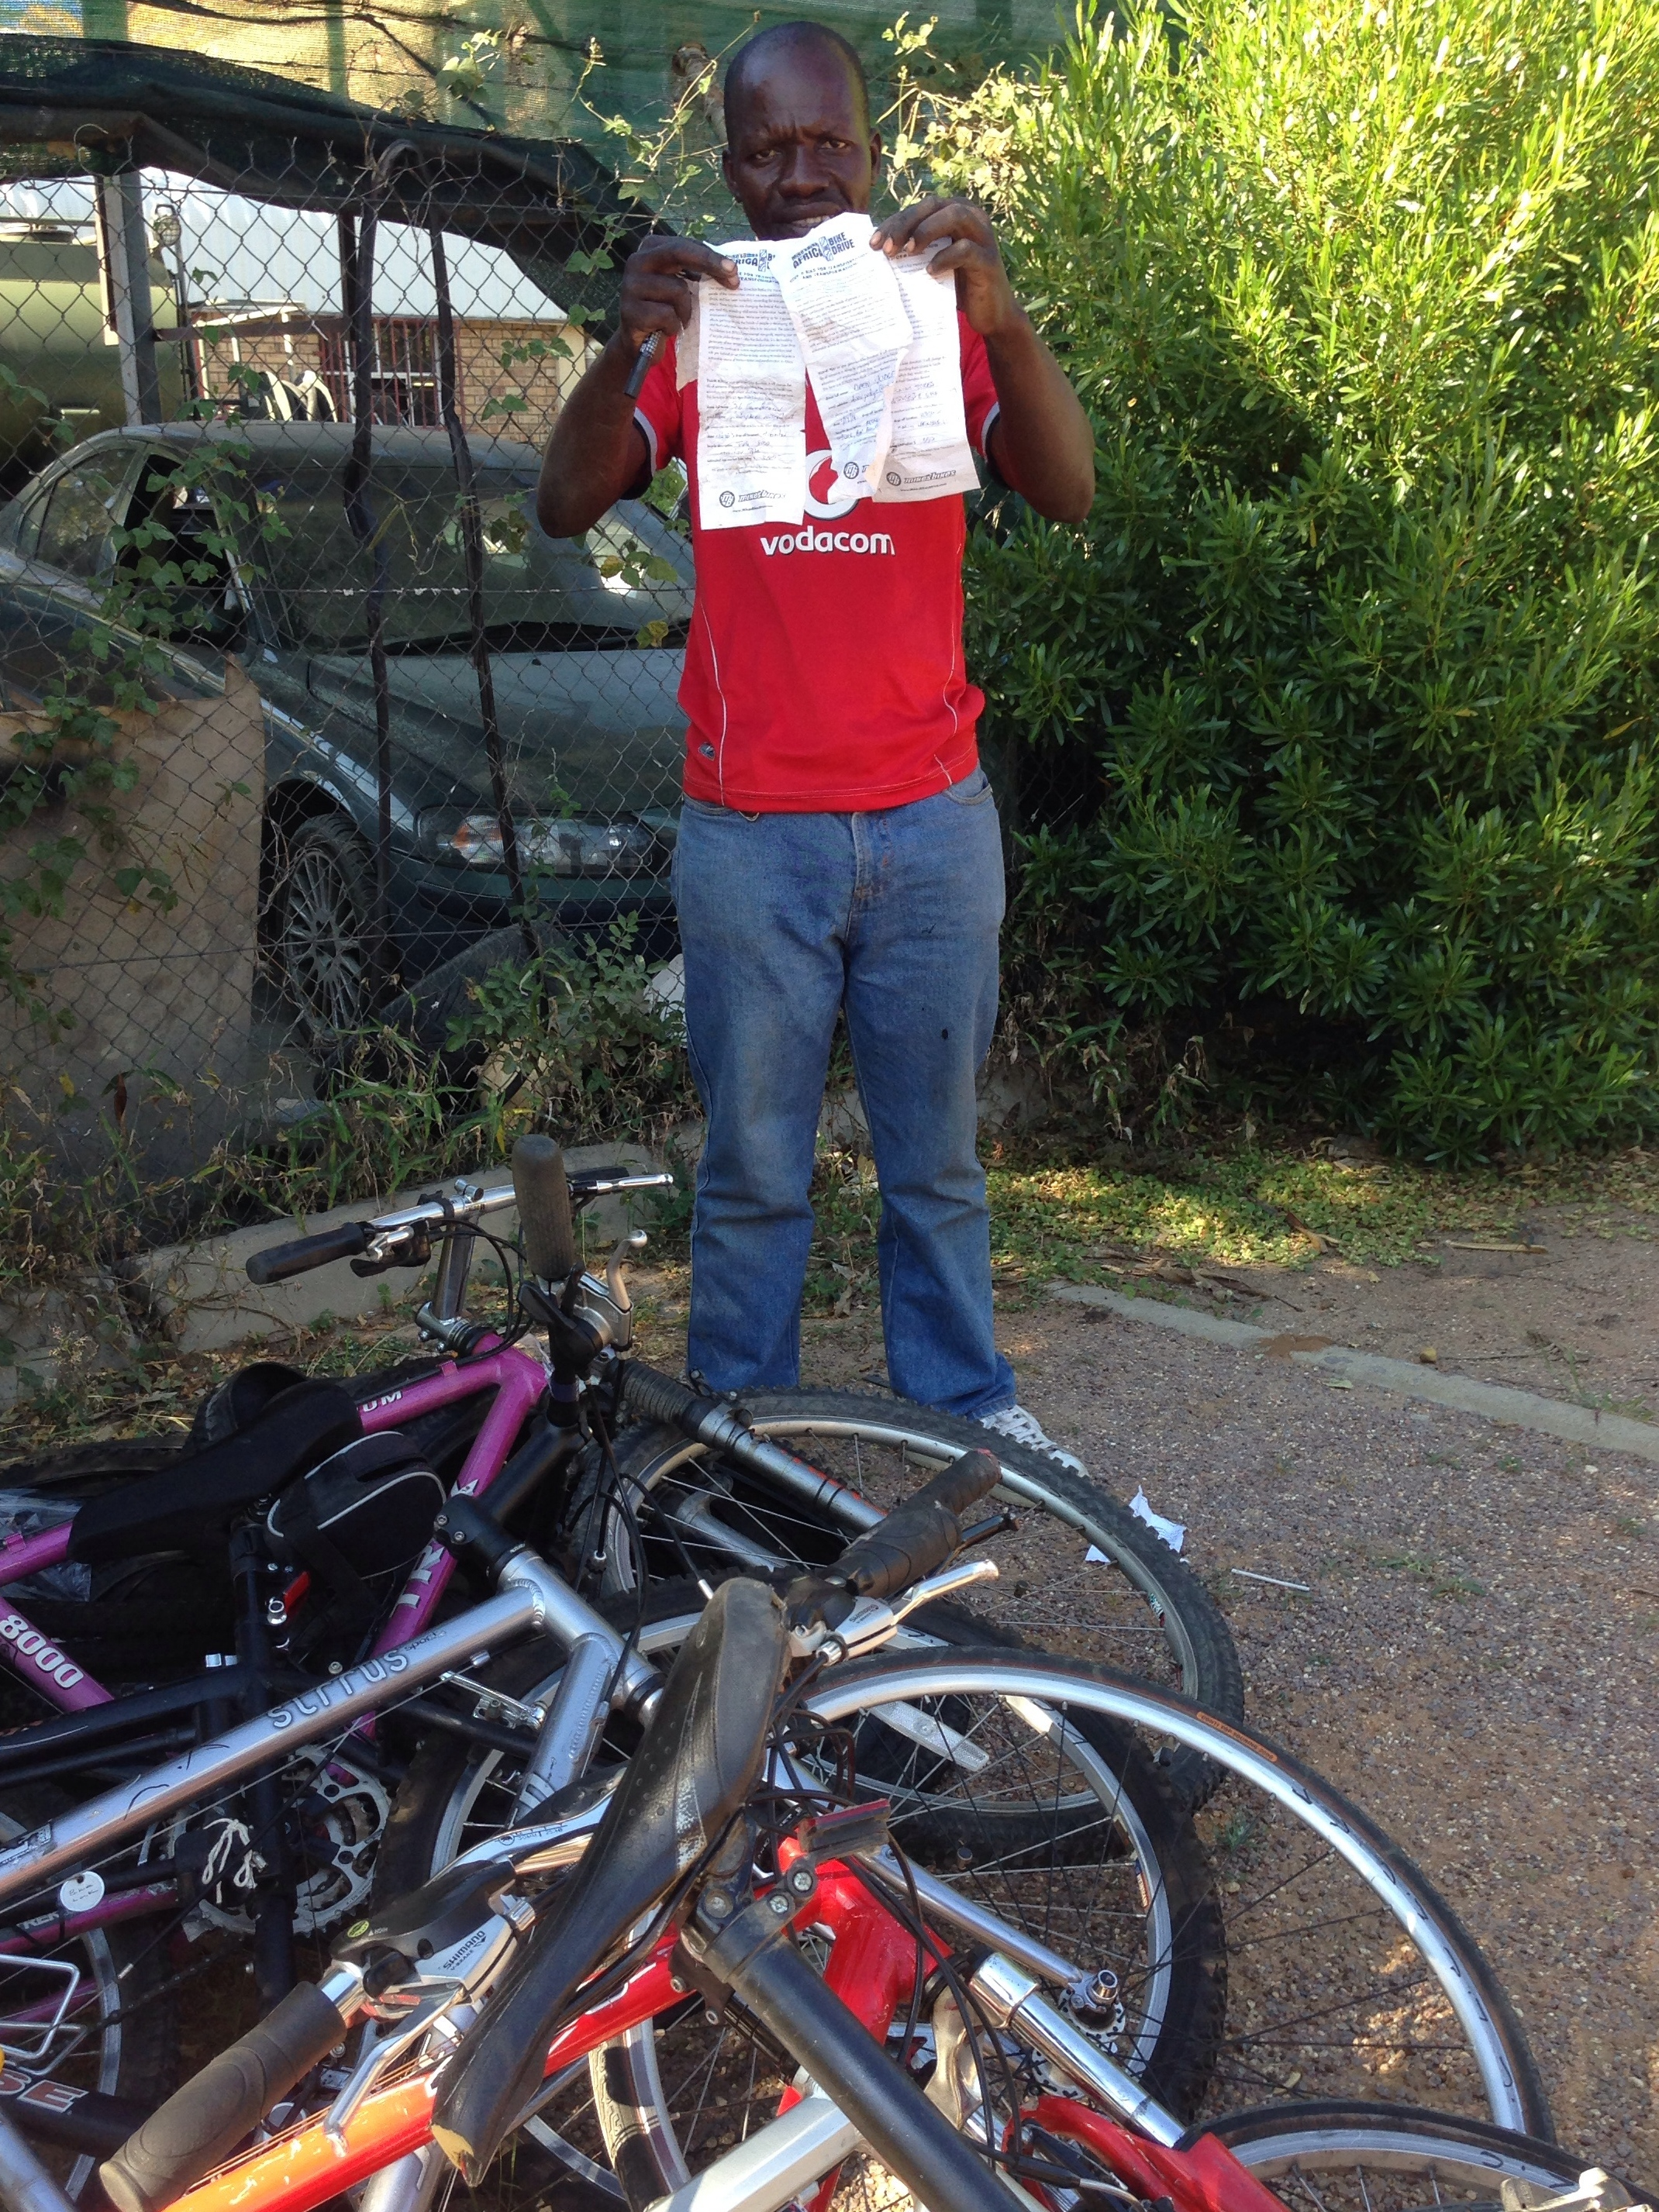 Lovemore with his new stock and slips from our bike donors in California.